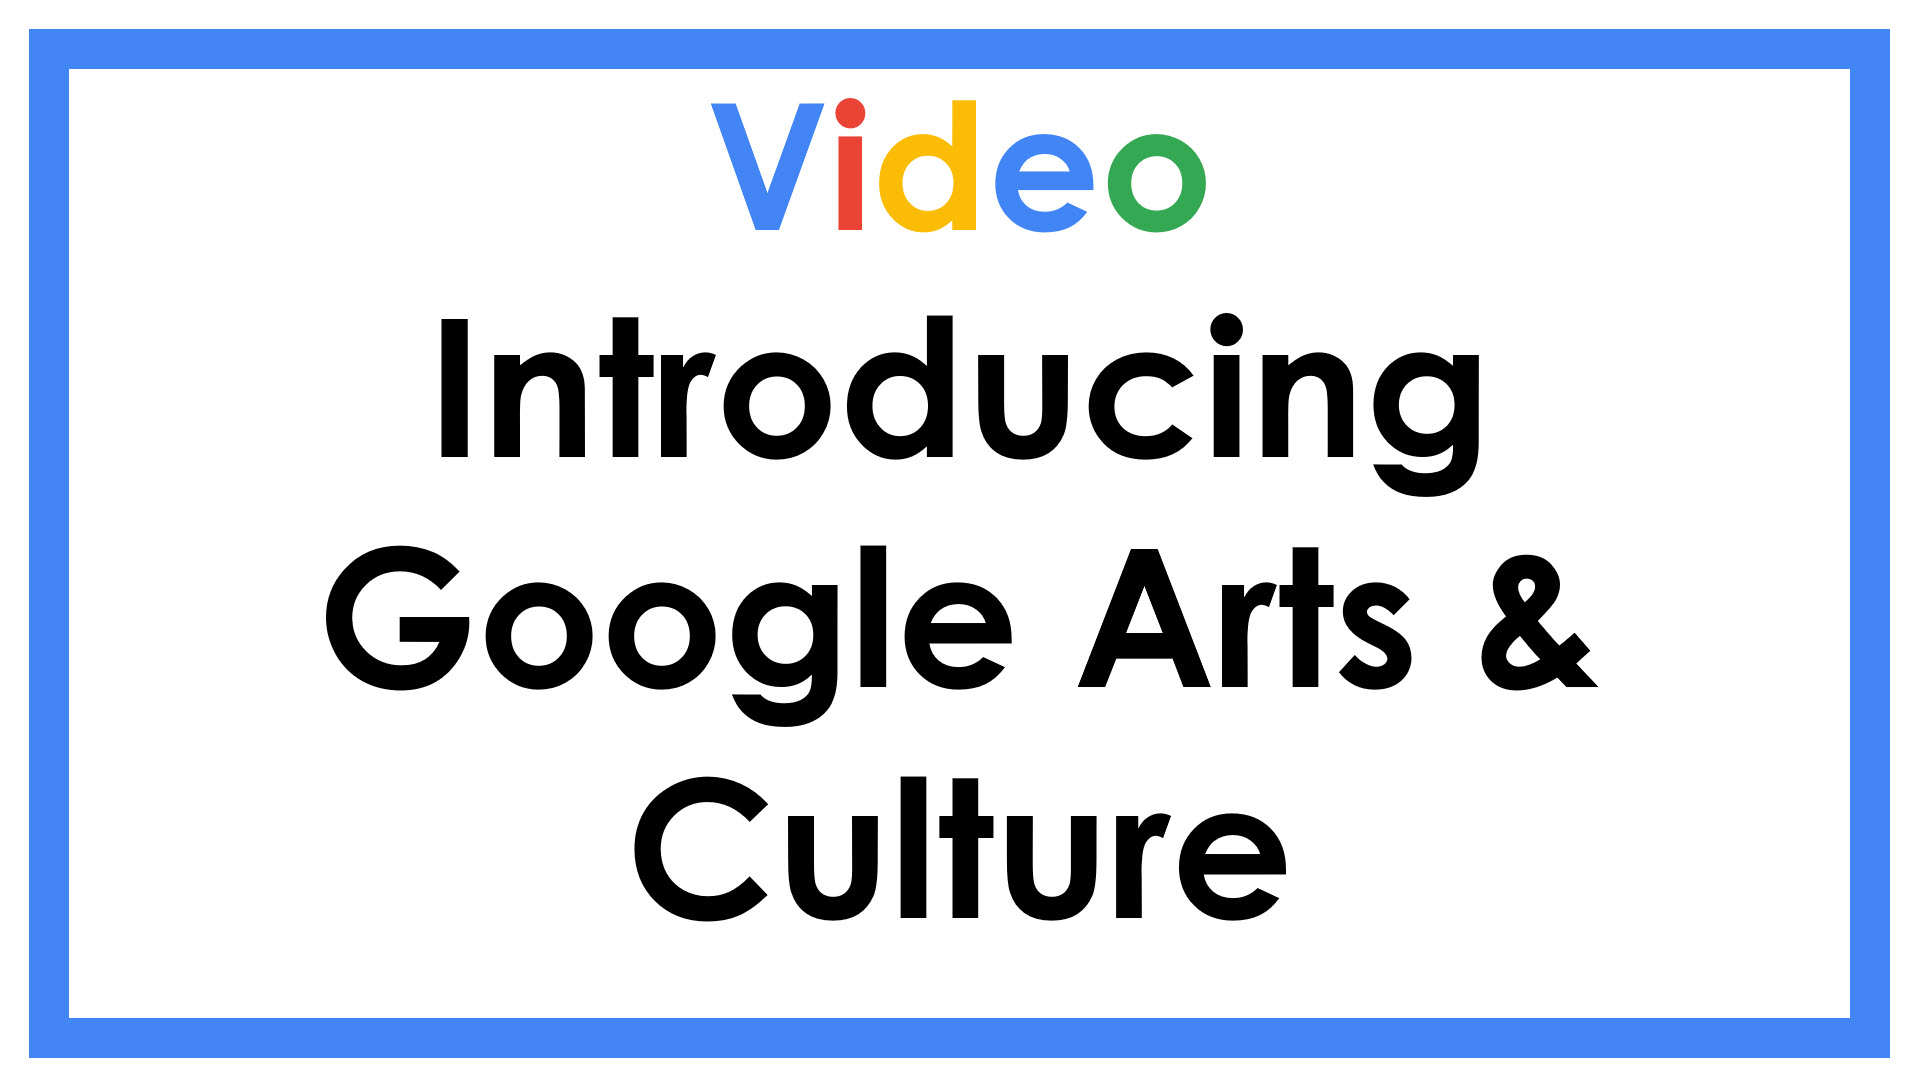 Introducing Google Arts & Culture